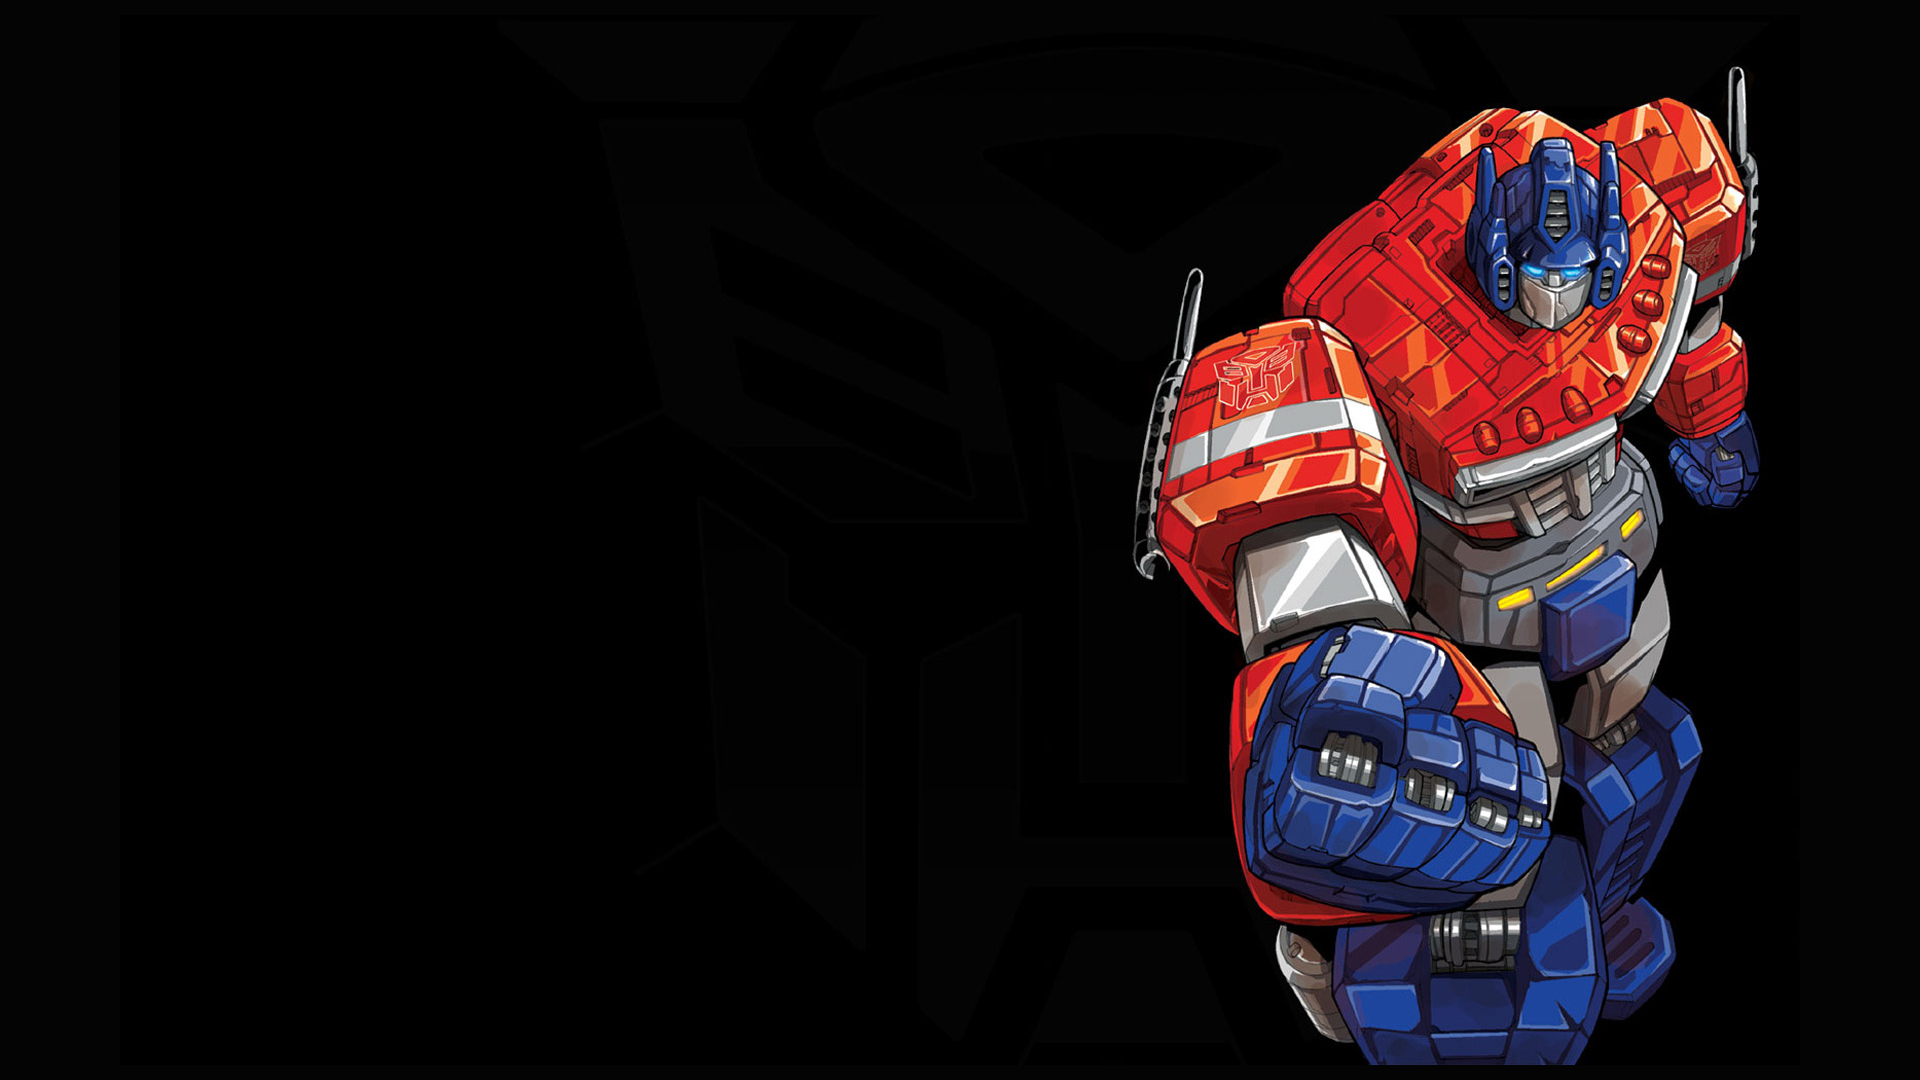 Transformers Hd Wallpaper Background Image 1920x1080